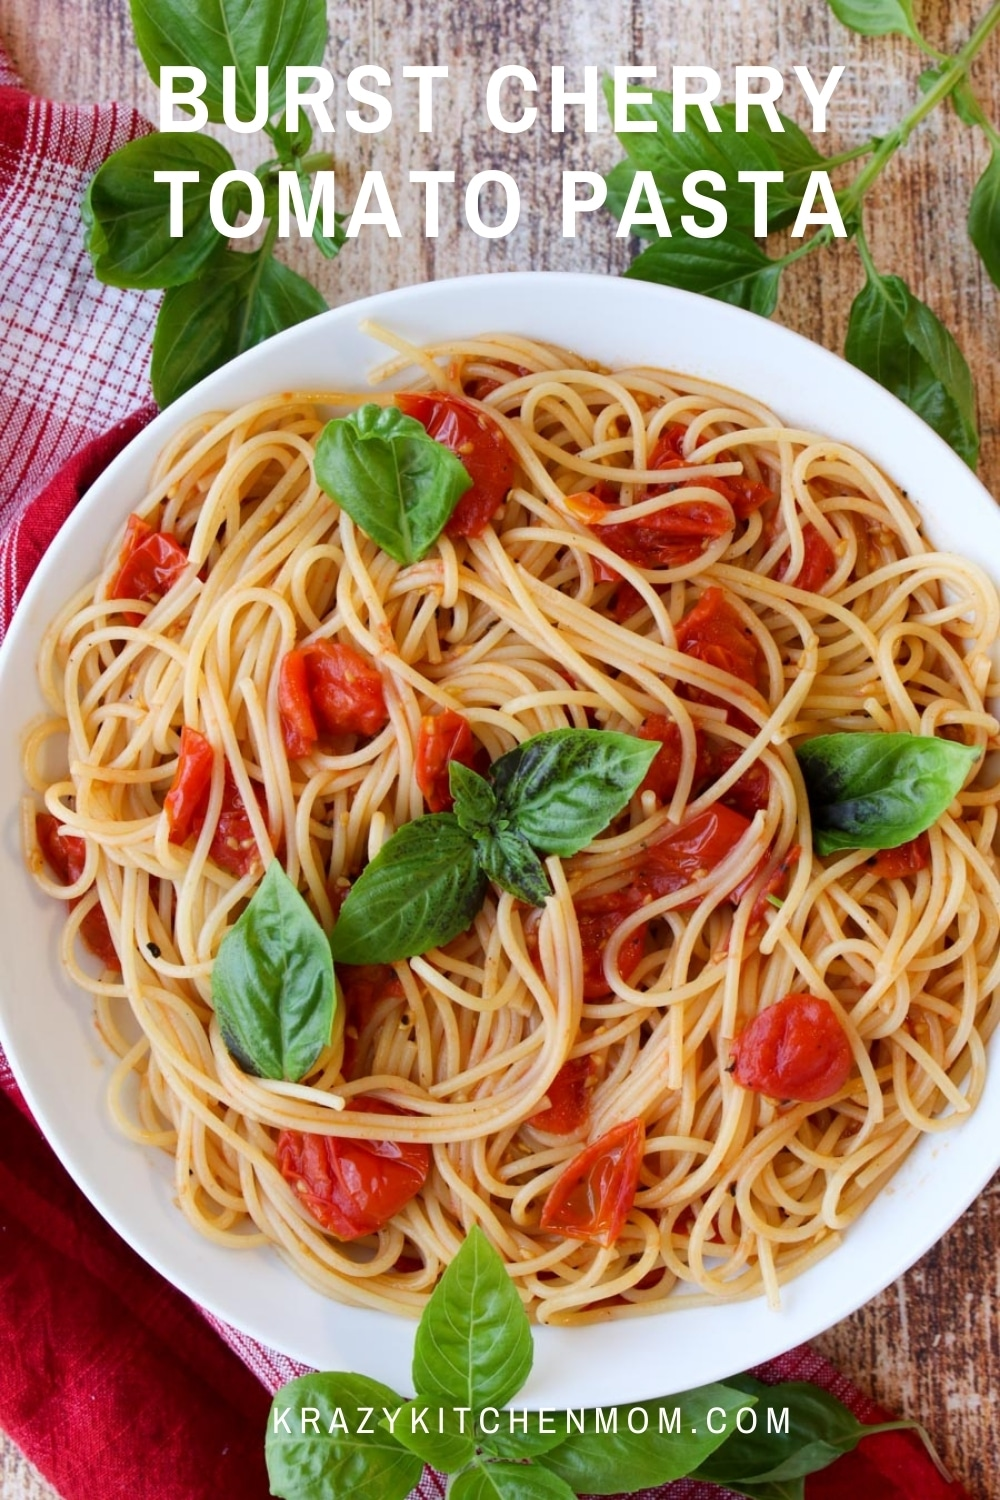 Pasta is a comfort food in my house. This quick, easy weeknight pasta dinner is creamy and rich and tastes like it came from a fancy Italian restaurant.  via @krazykitchenmom